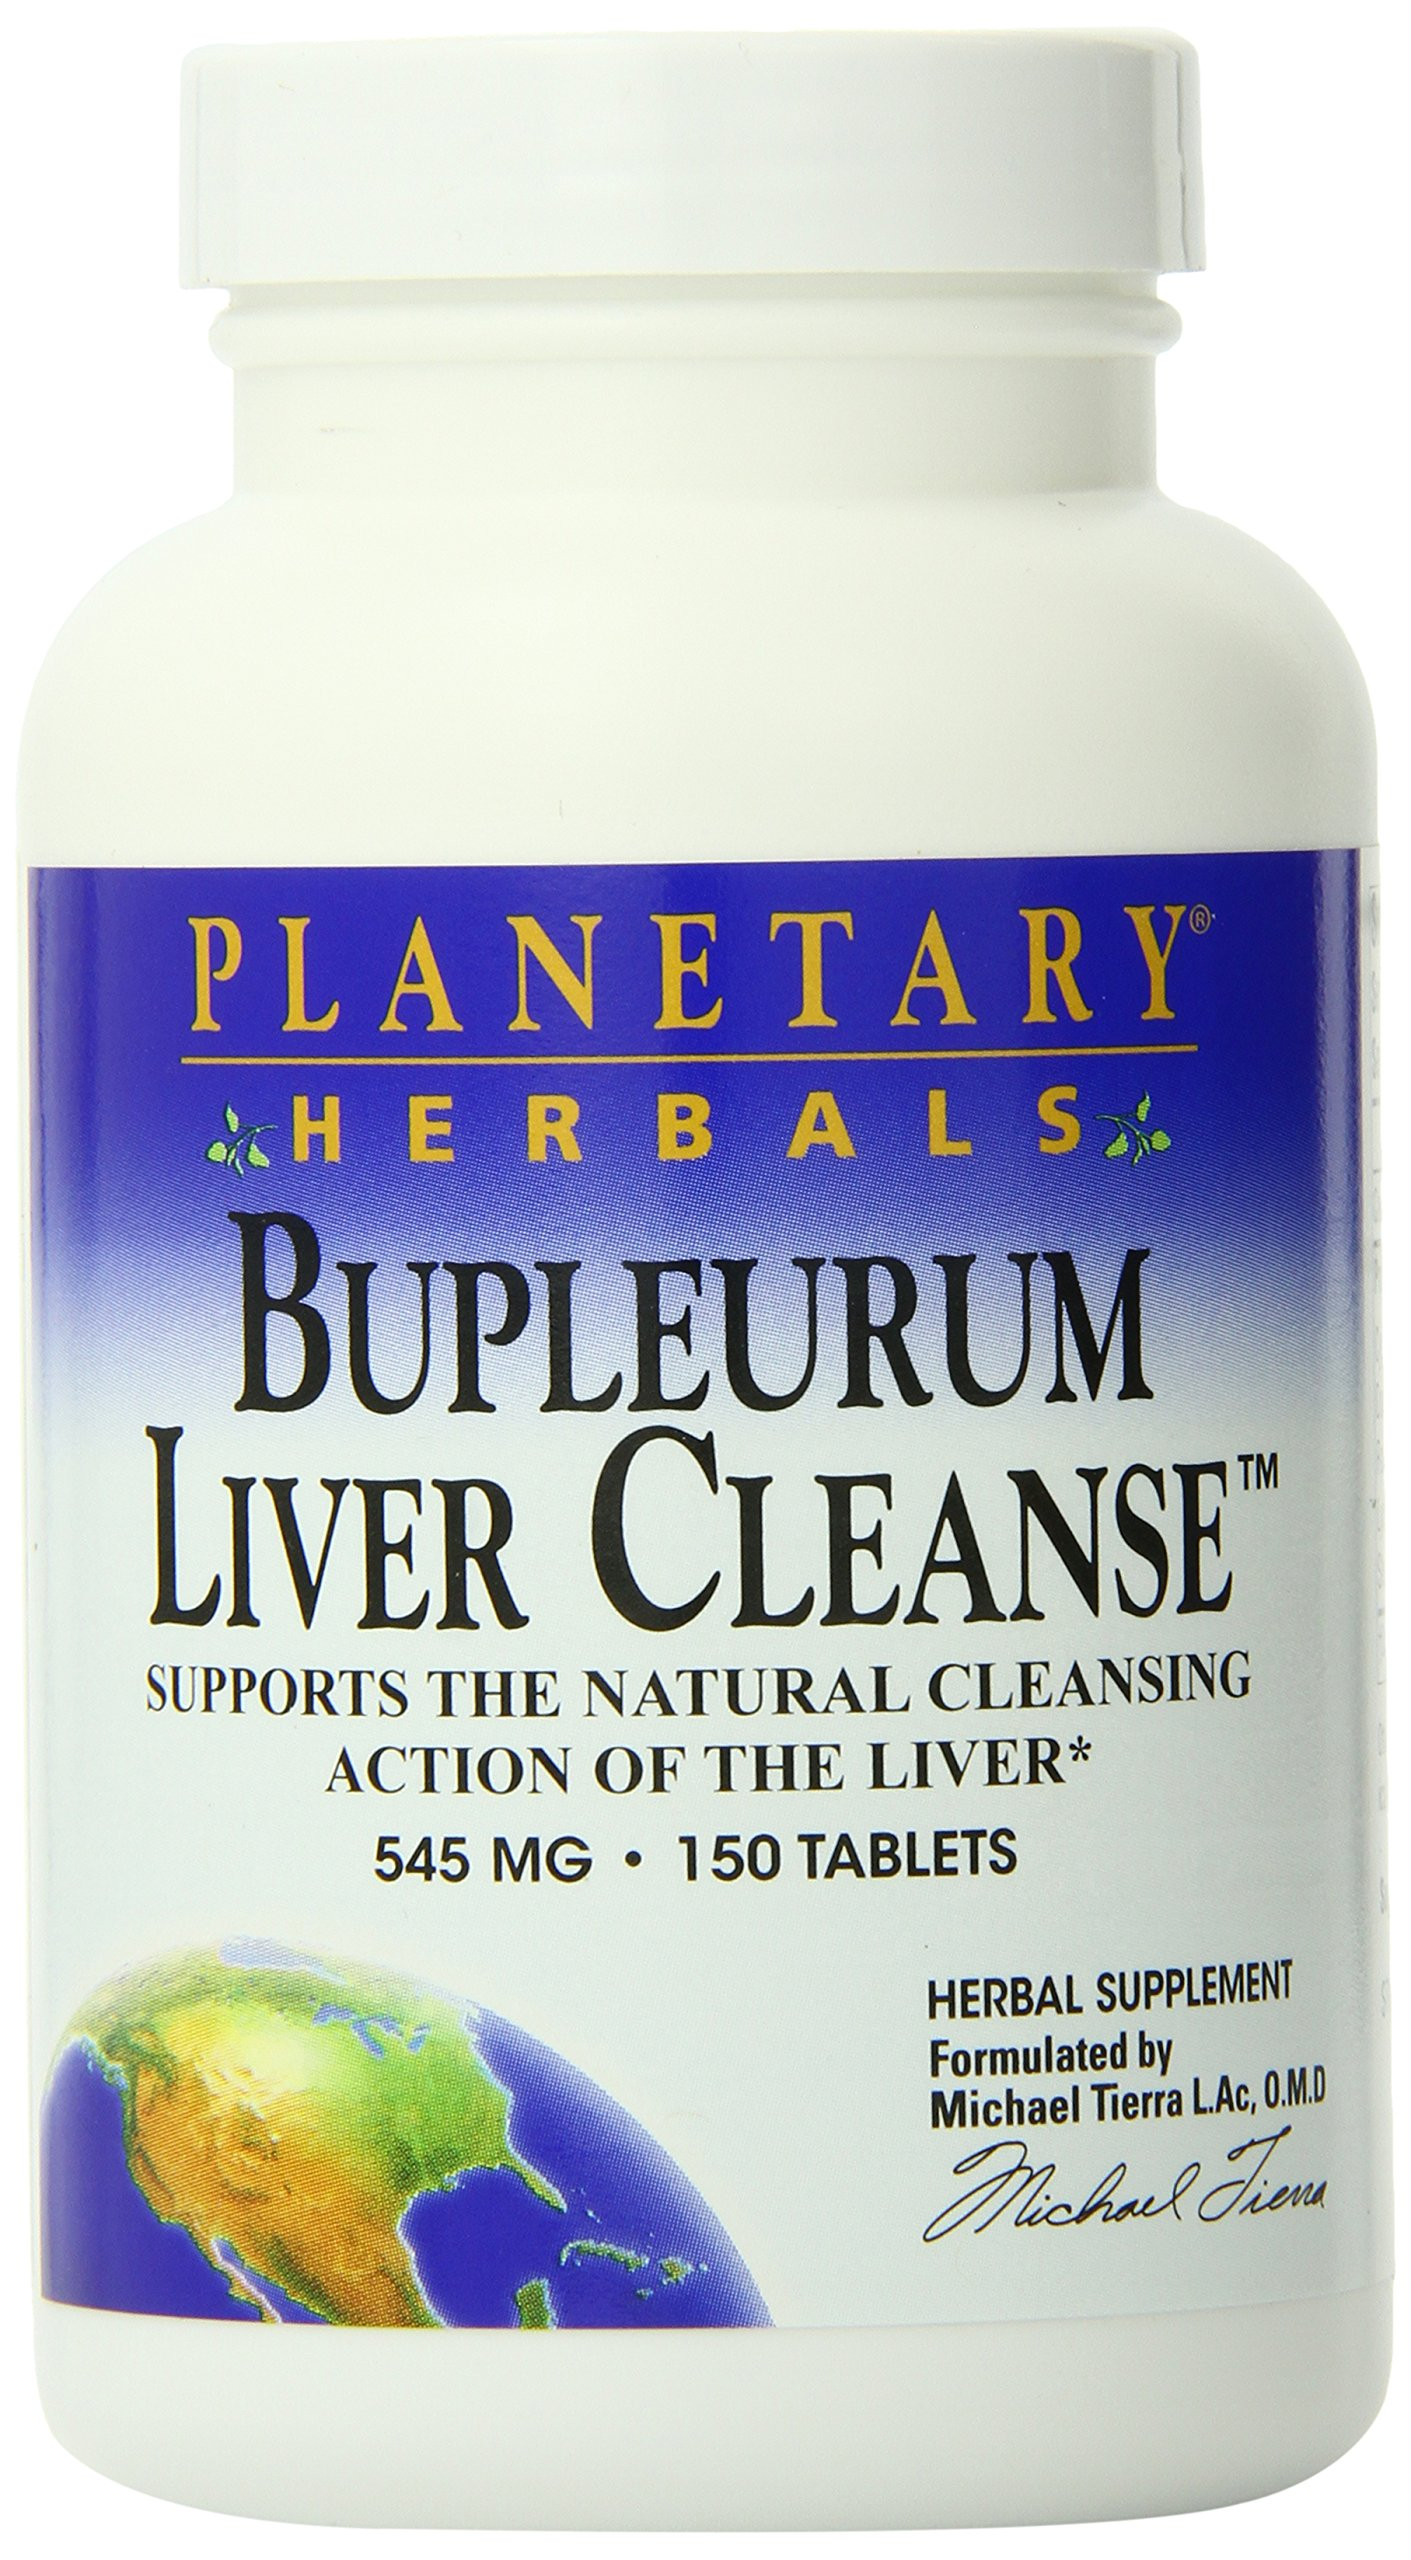 Planetary Herbals Bupleurum Liver Cleanse 545mg, Supports the Natural Cleansing Action of the Liver